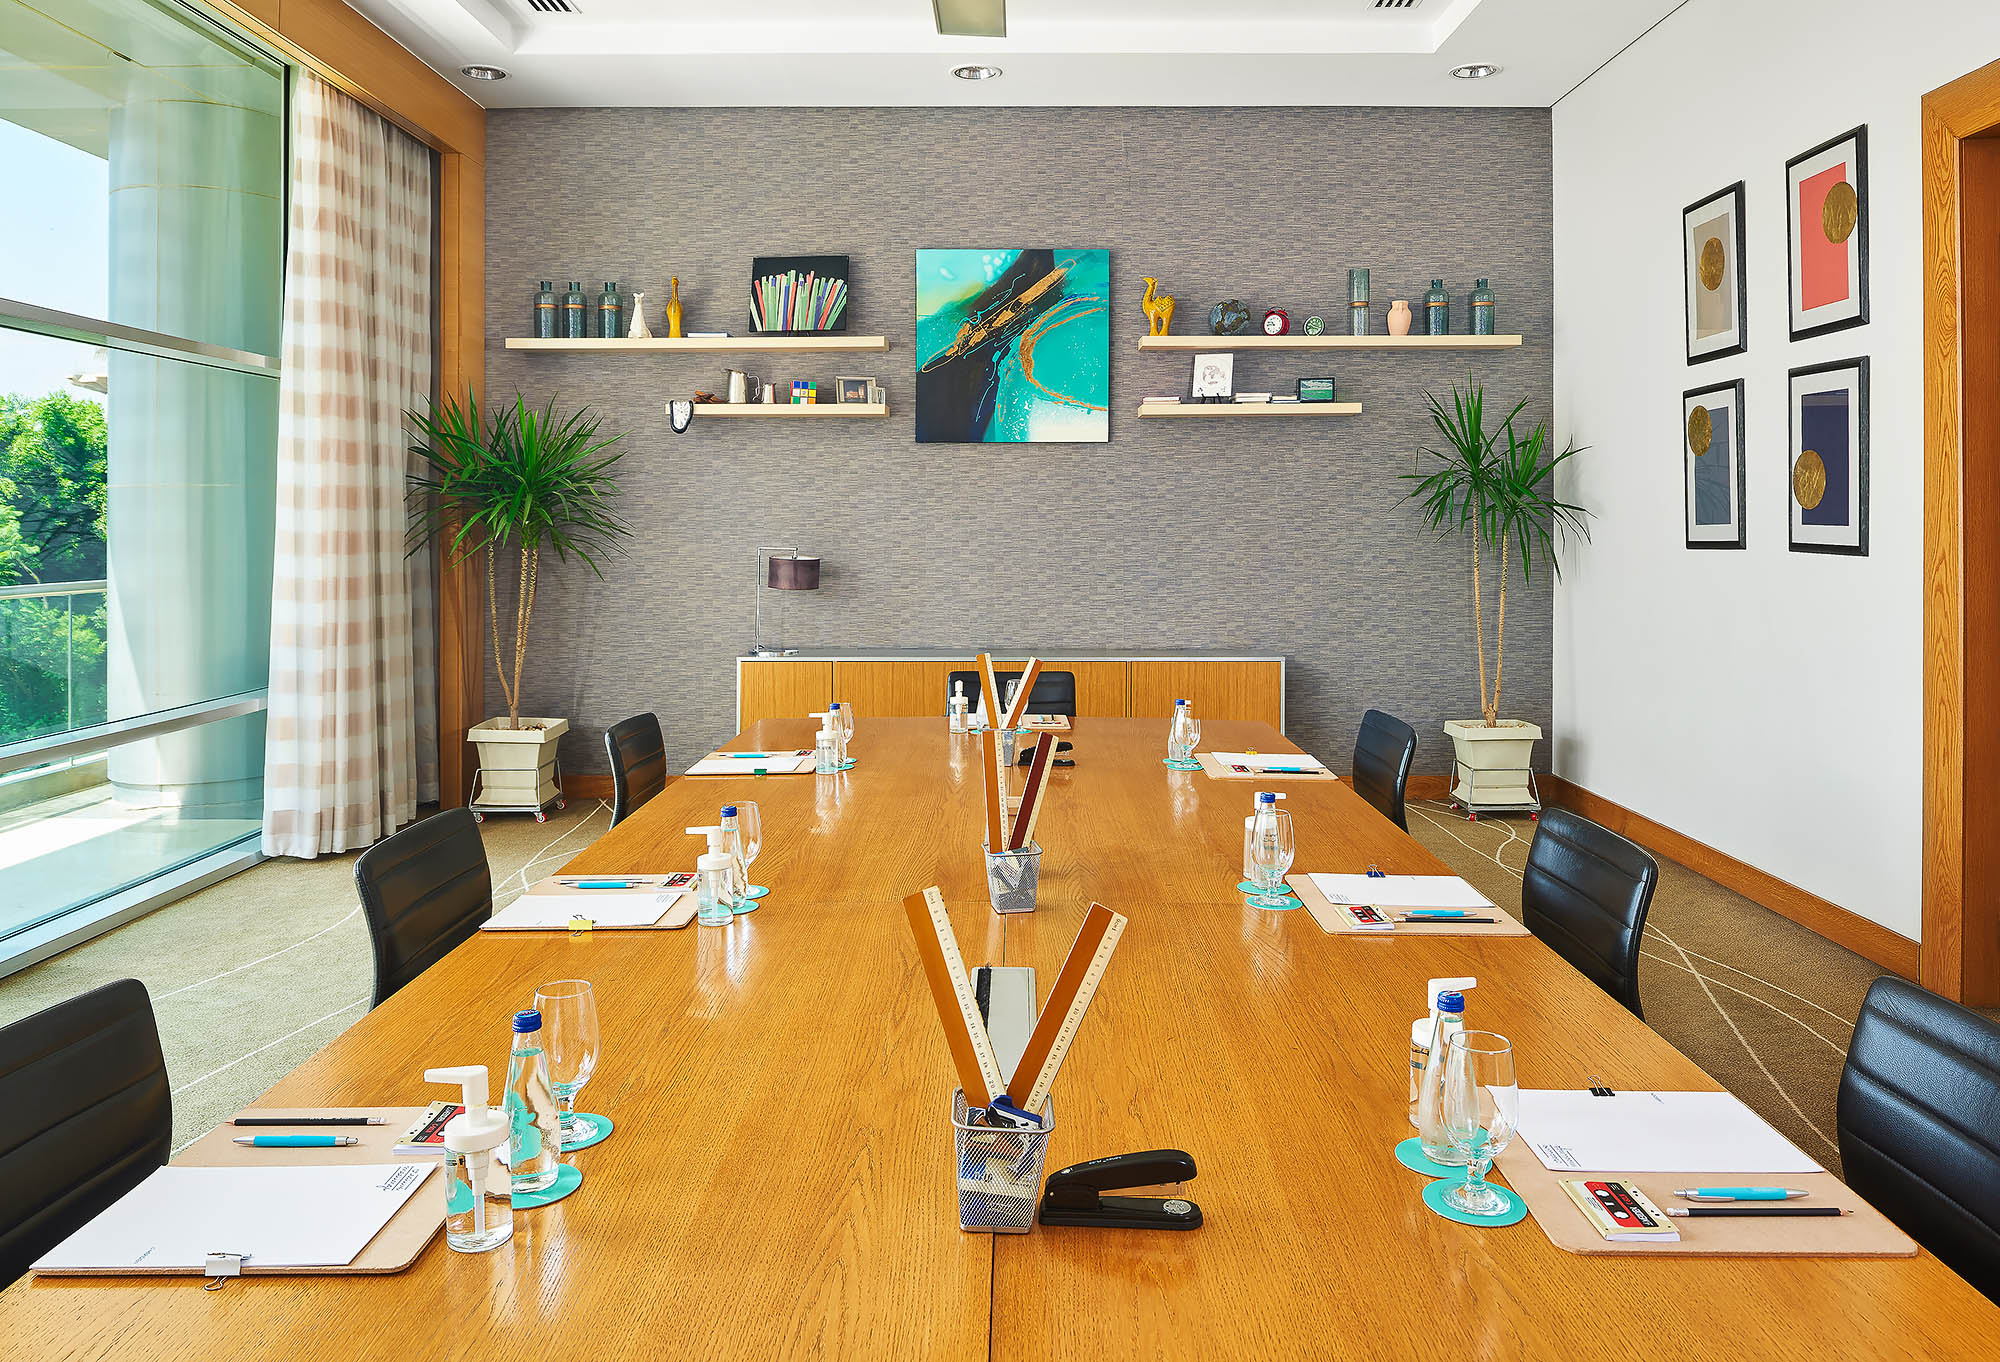 Le Méridien Cairo Airport Hotel - Meeting Room - Hospitality photographer - Egypt - Mohamed Abdel-Hady - August 2020